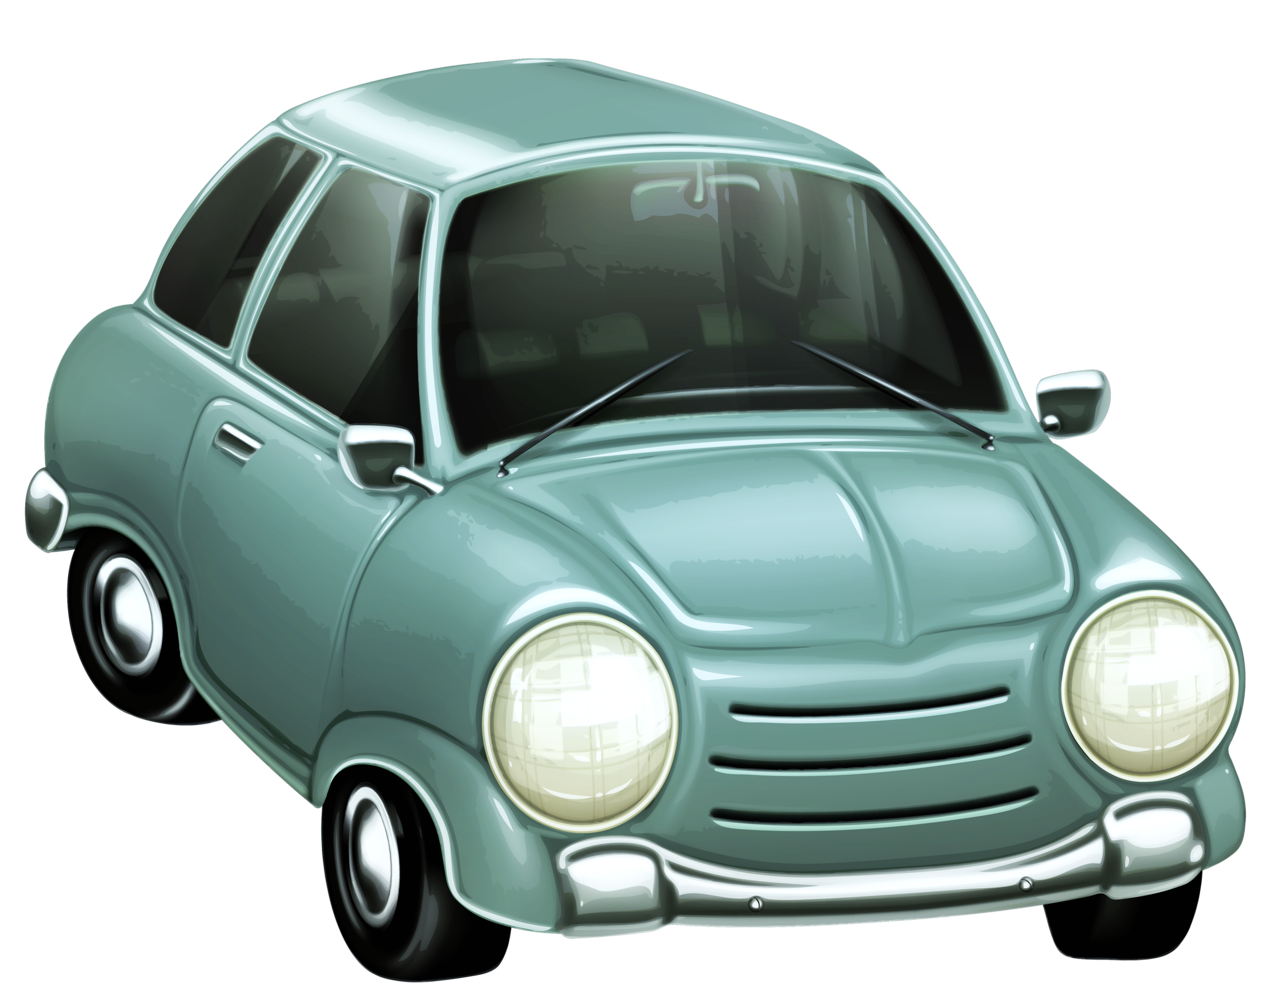 Car speeding away clipart clipart freeuse library Mini Clipart cute car - Free Clipart on Dumielauxepices.net clipart freeuse library